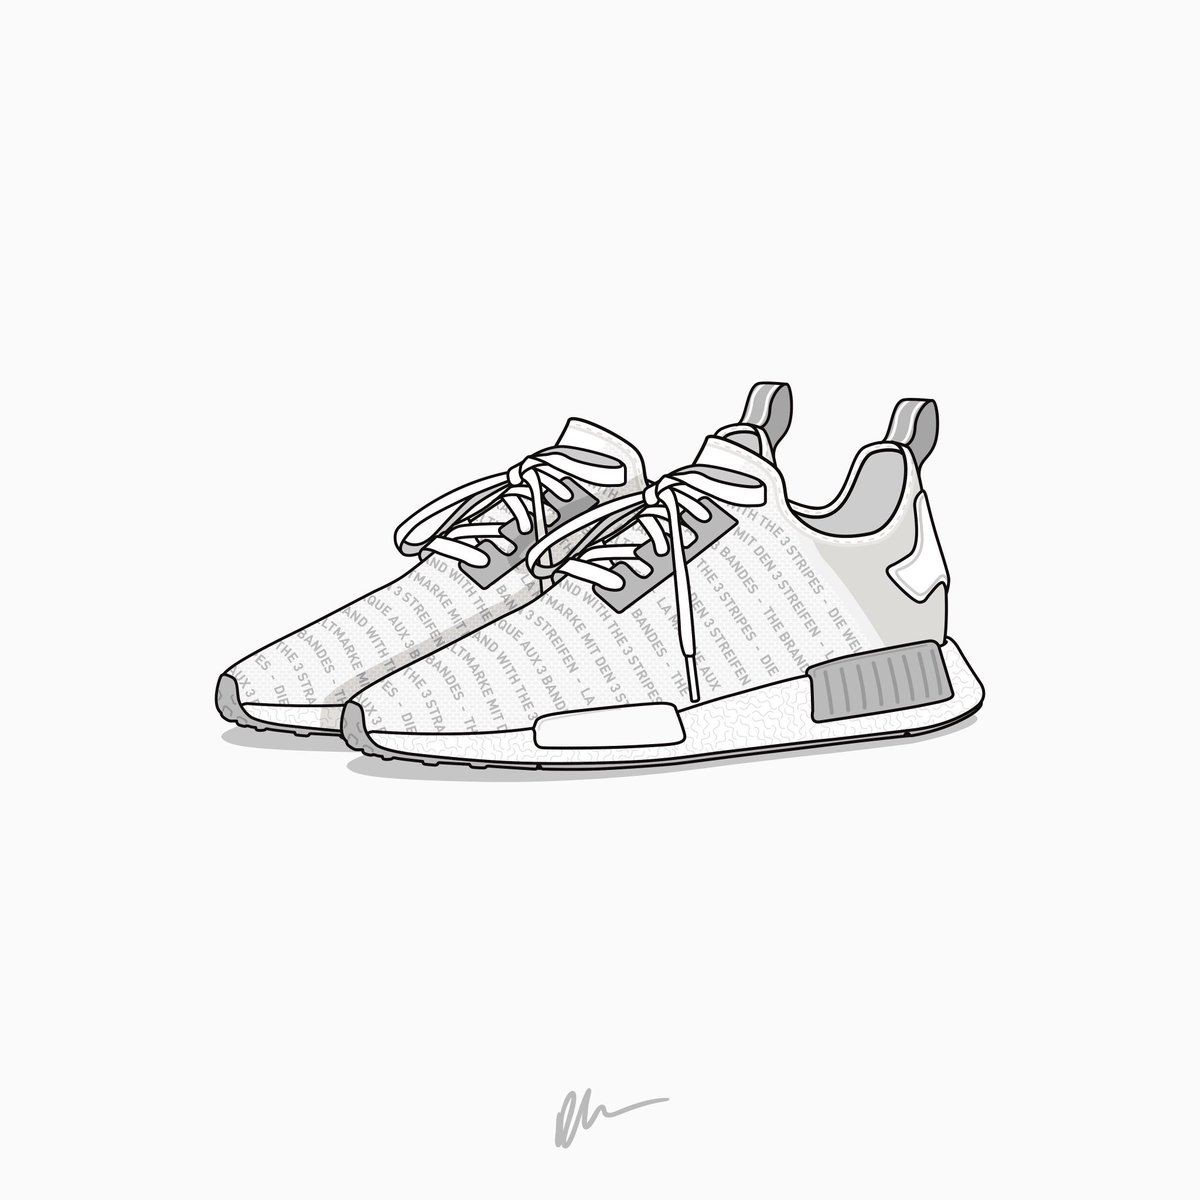 1200x1200 Dan Freebairn On Twitter Three @adidasoriginals Nmds Dropped